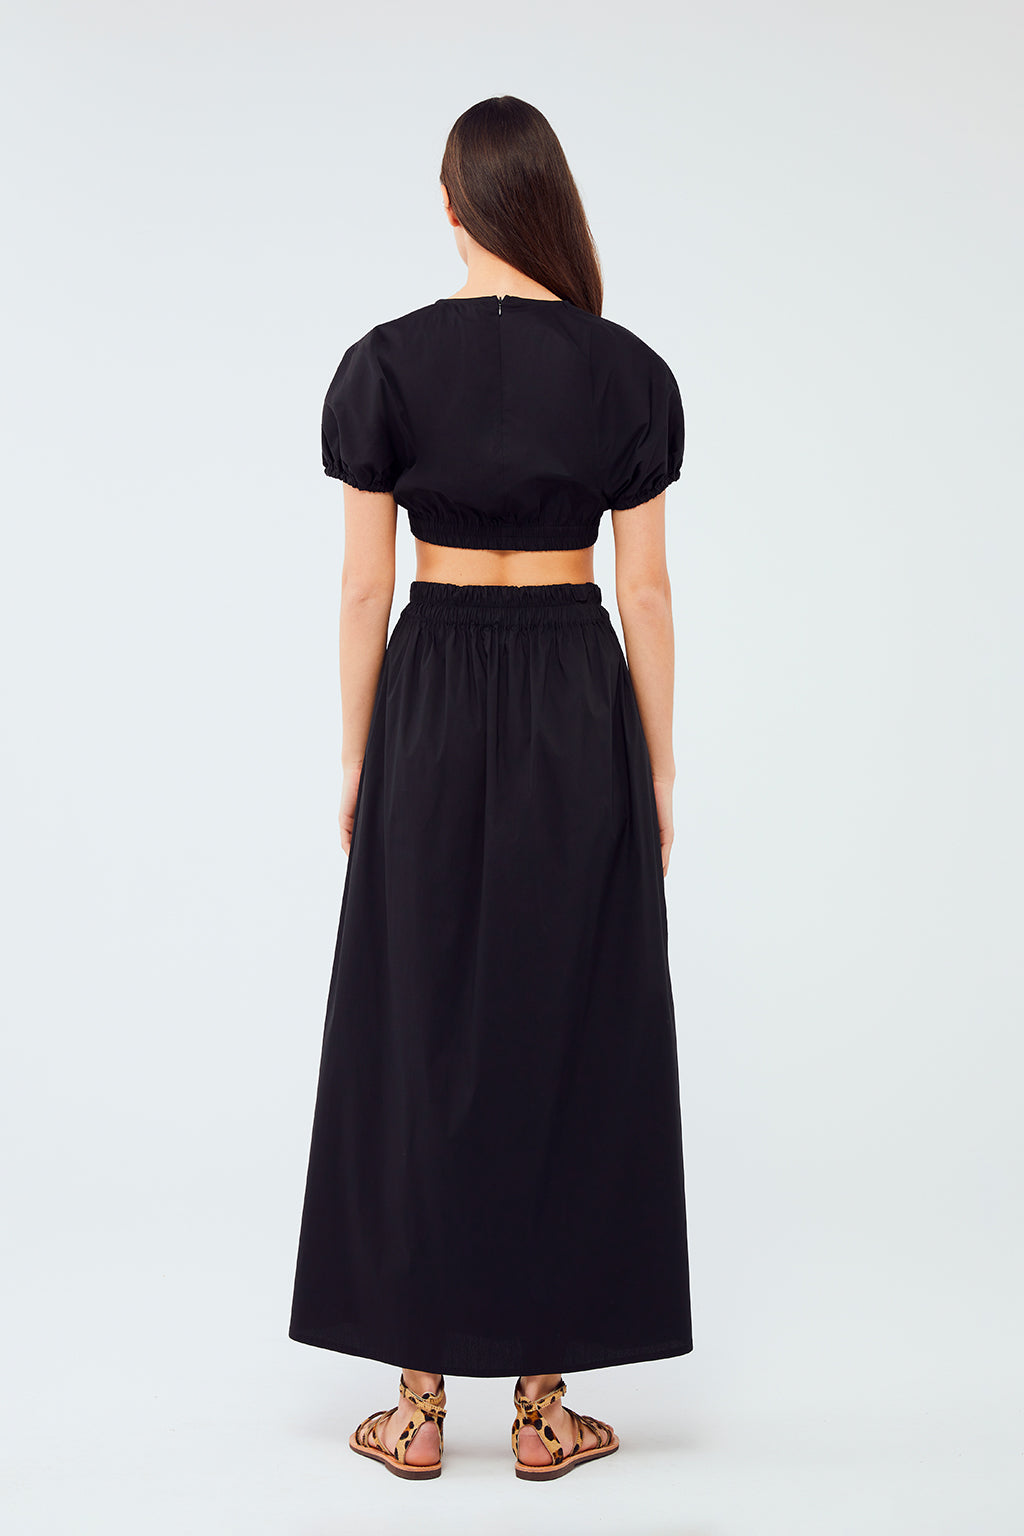 Wildwood - Tangier Skirt | Black